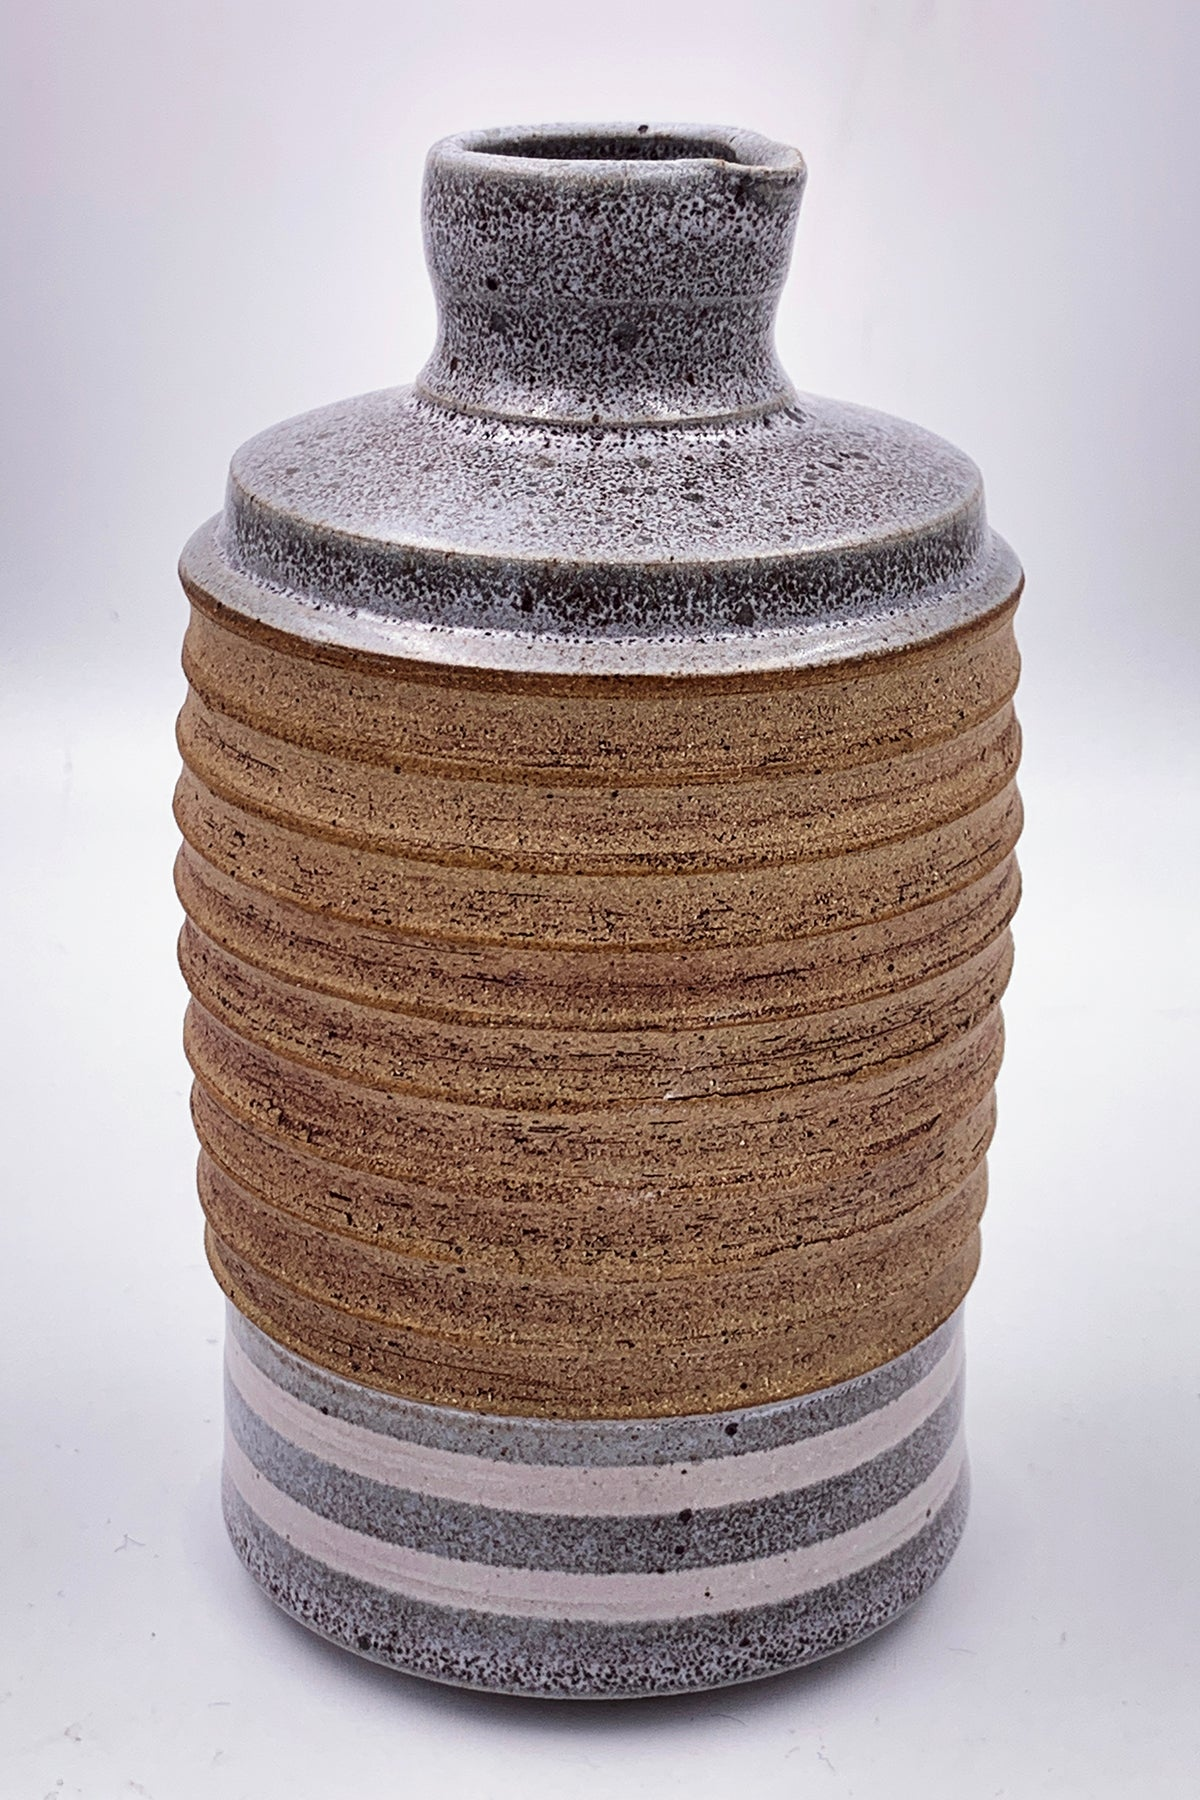 One of a kind, Bottle/Vase Grey & Raw